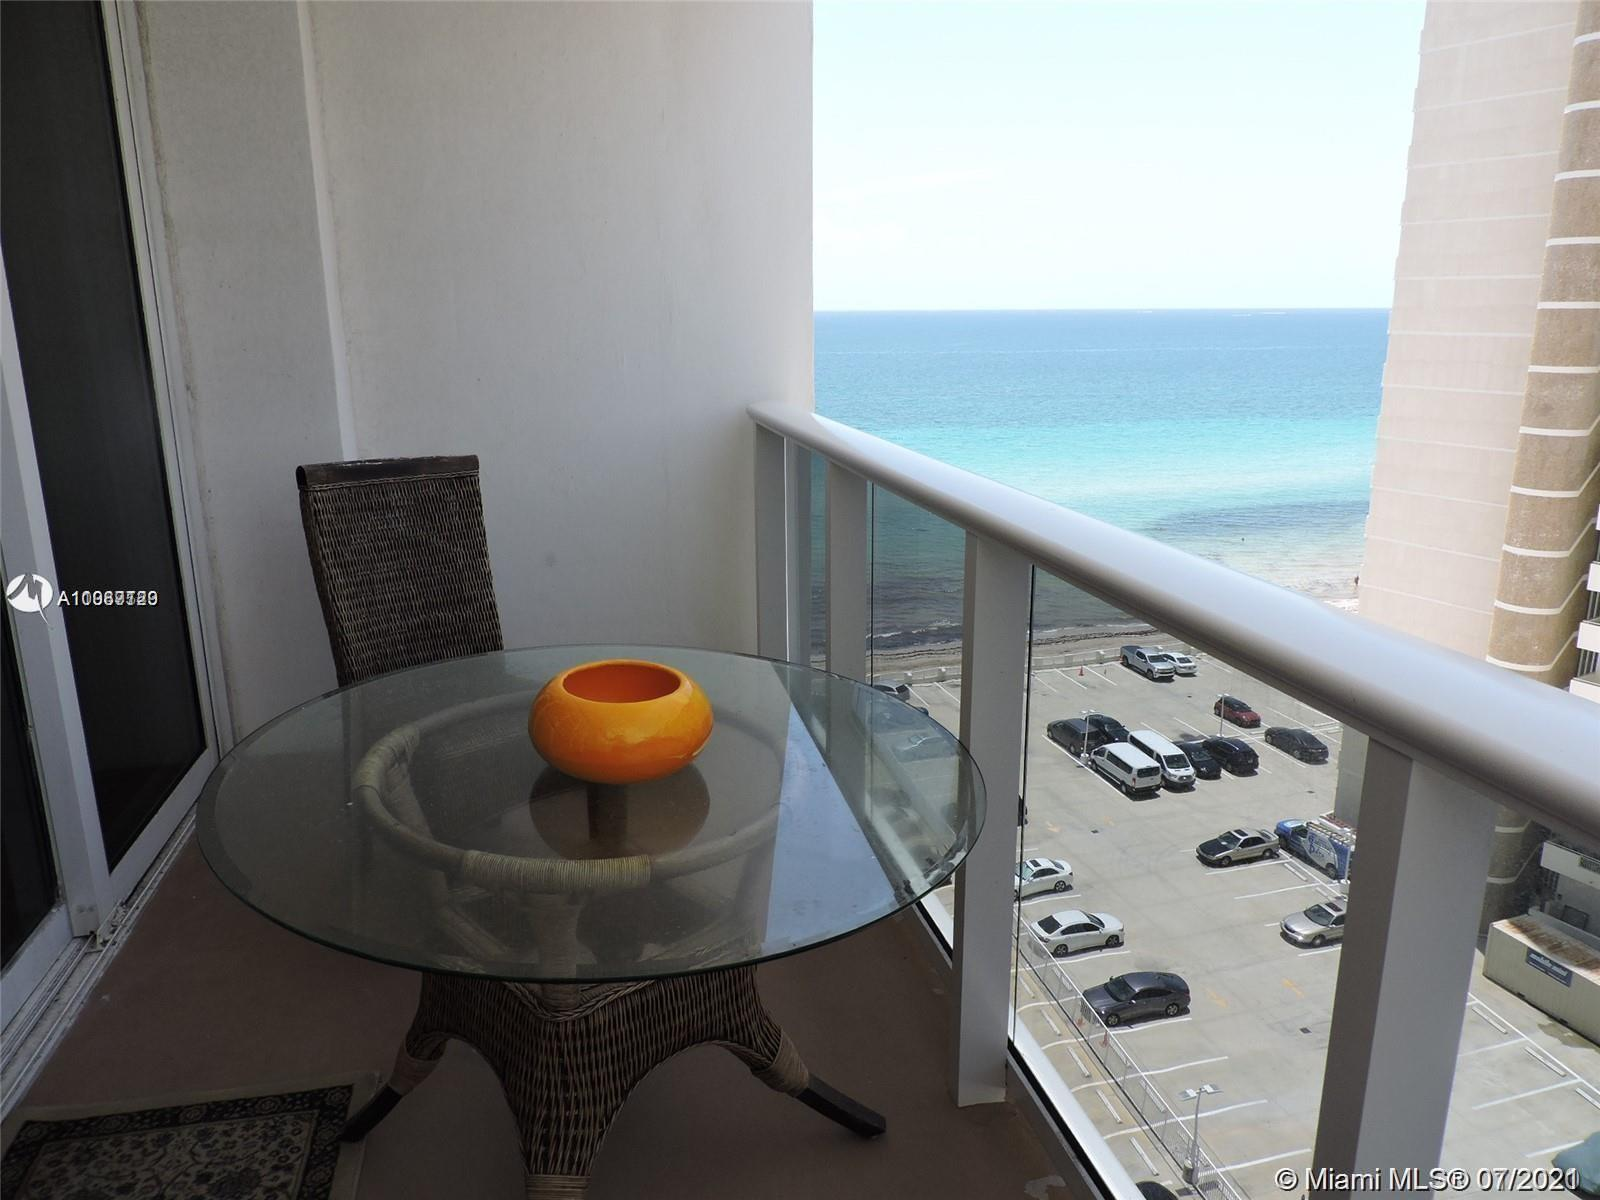 Remodeled unit with a great view to Ocean and intracoastal, granite countertops in kitchen and hurri